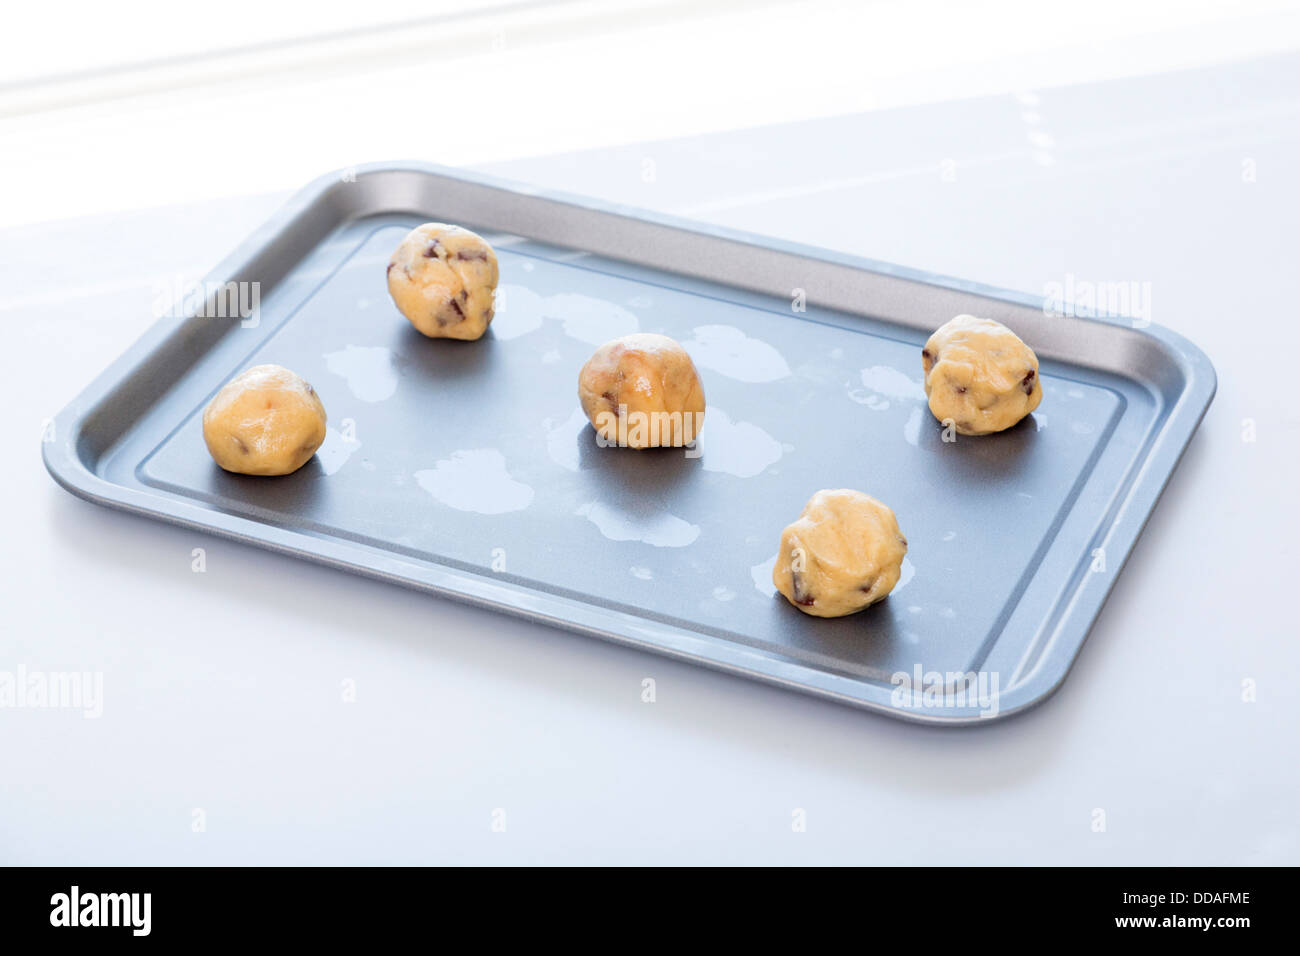 unbaked cookies on tray - Stock Image